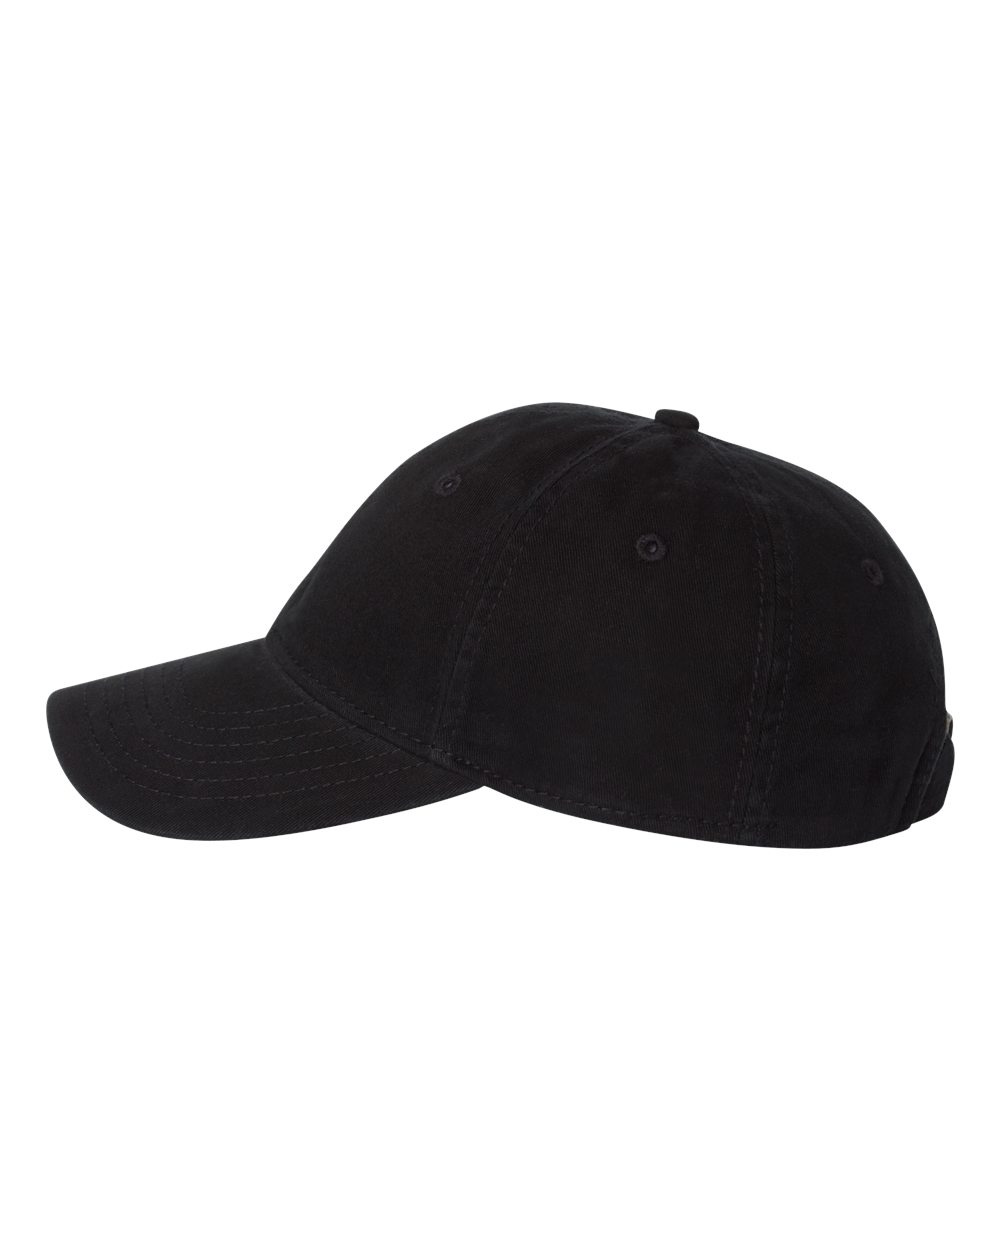 Authentic Headwear AH35 The Cozy Unstructured Cap